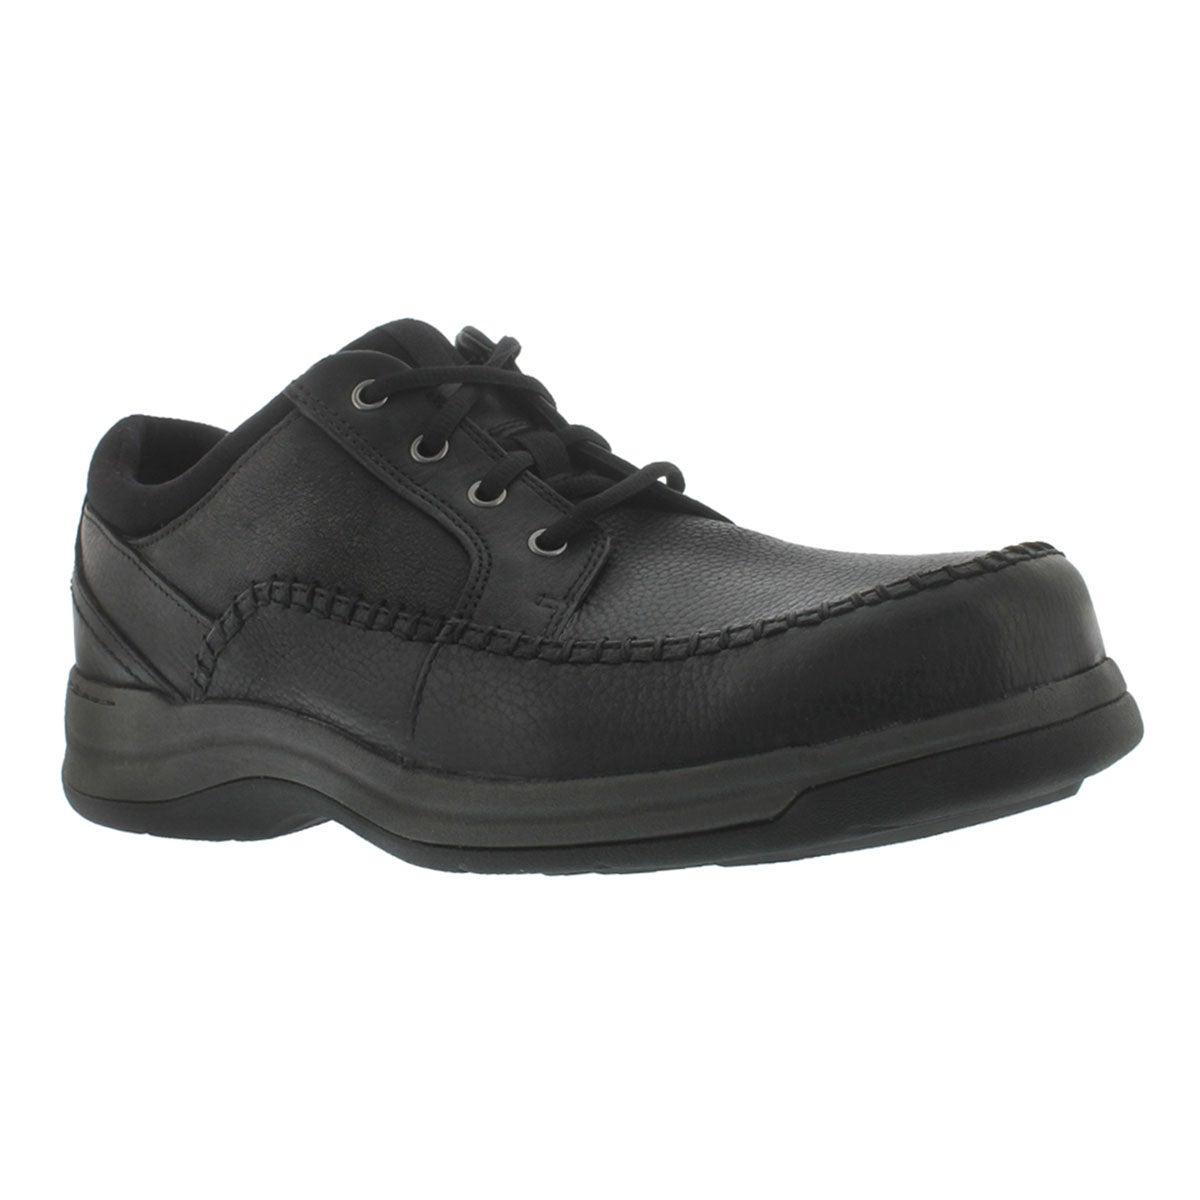 Men's PORTLAND2 TIE black comfort oxfords - Wide